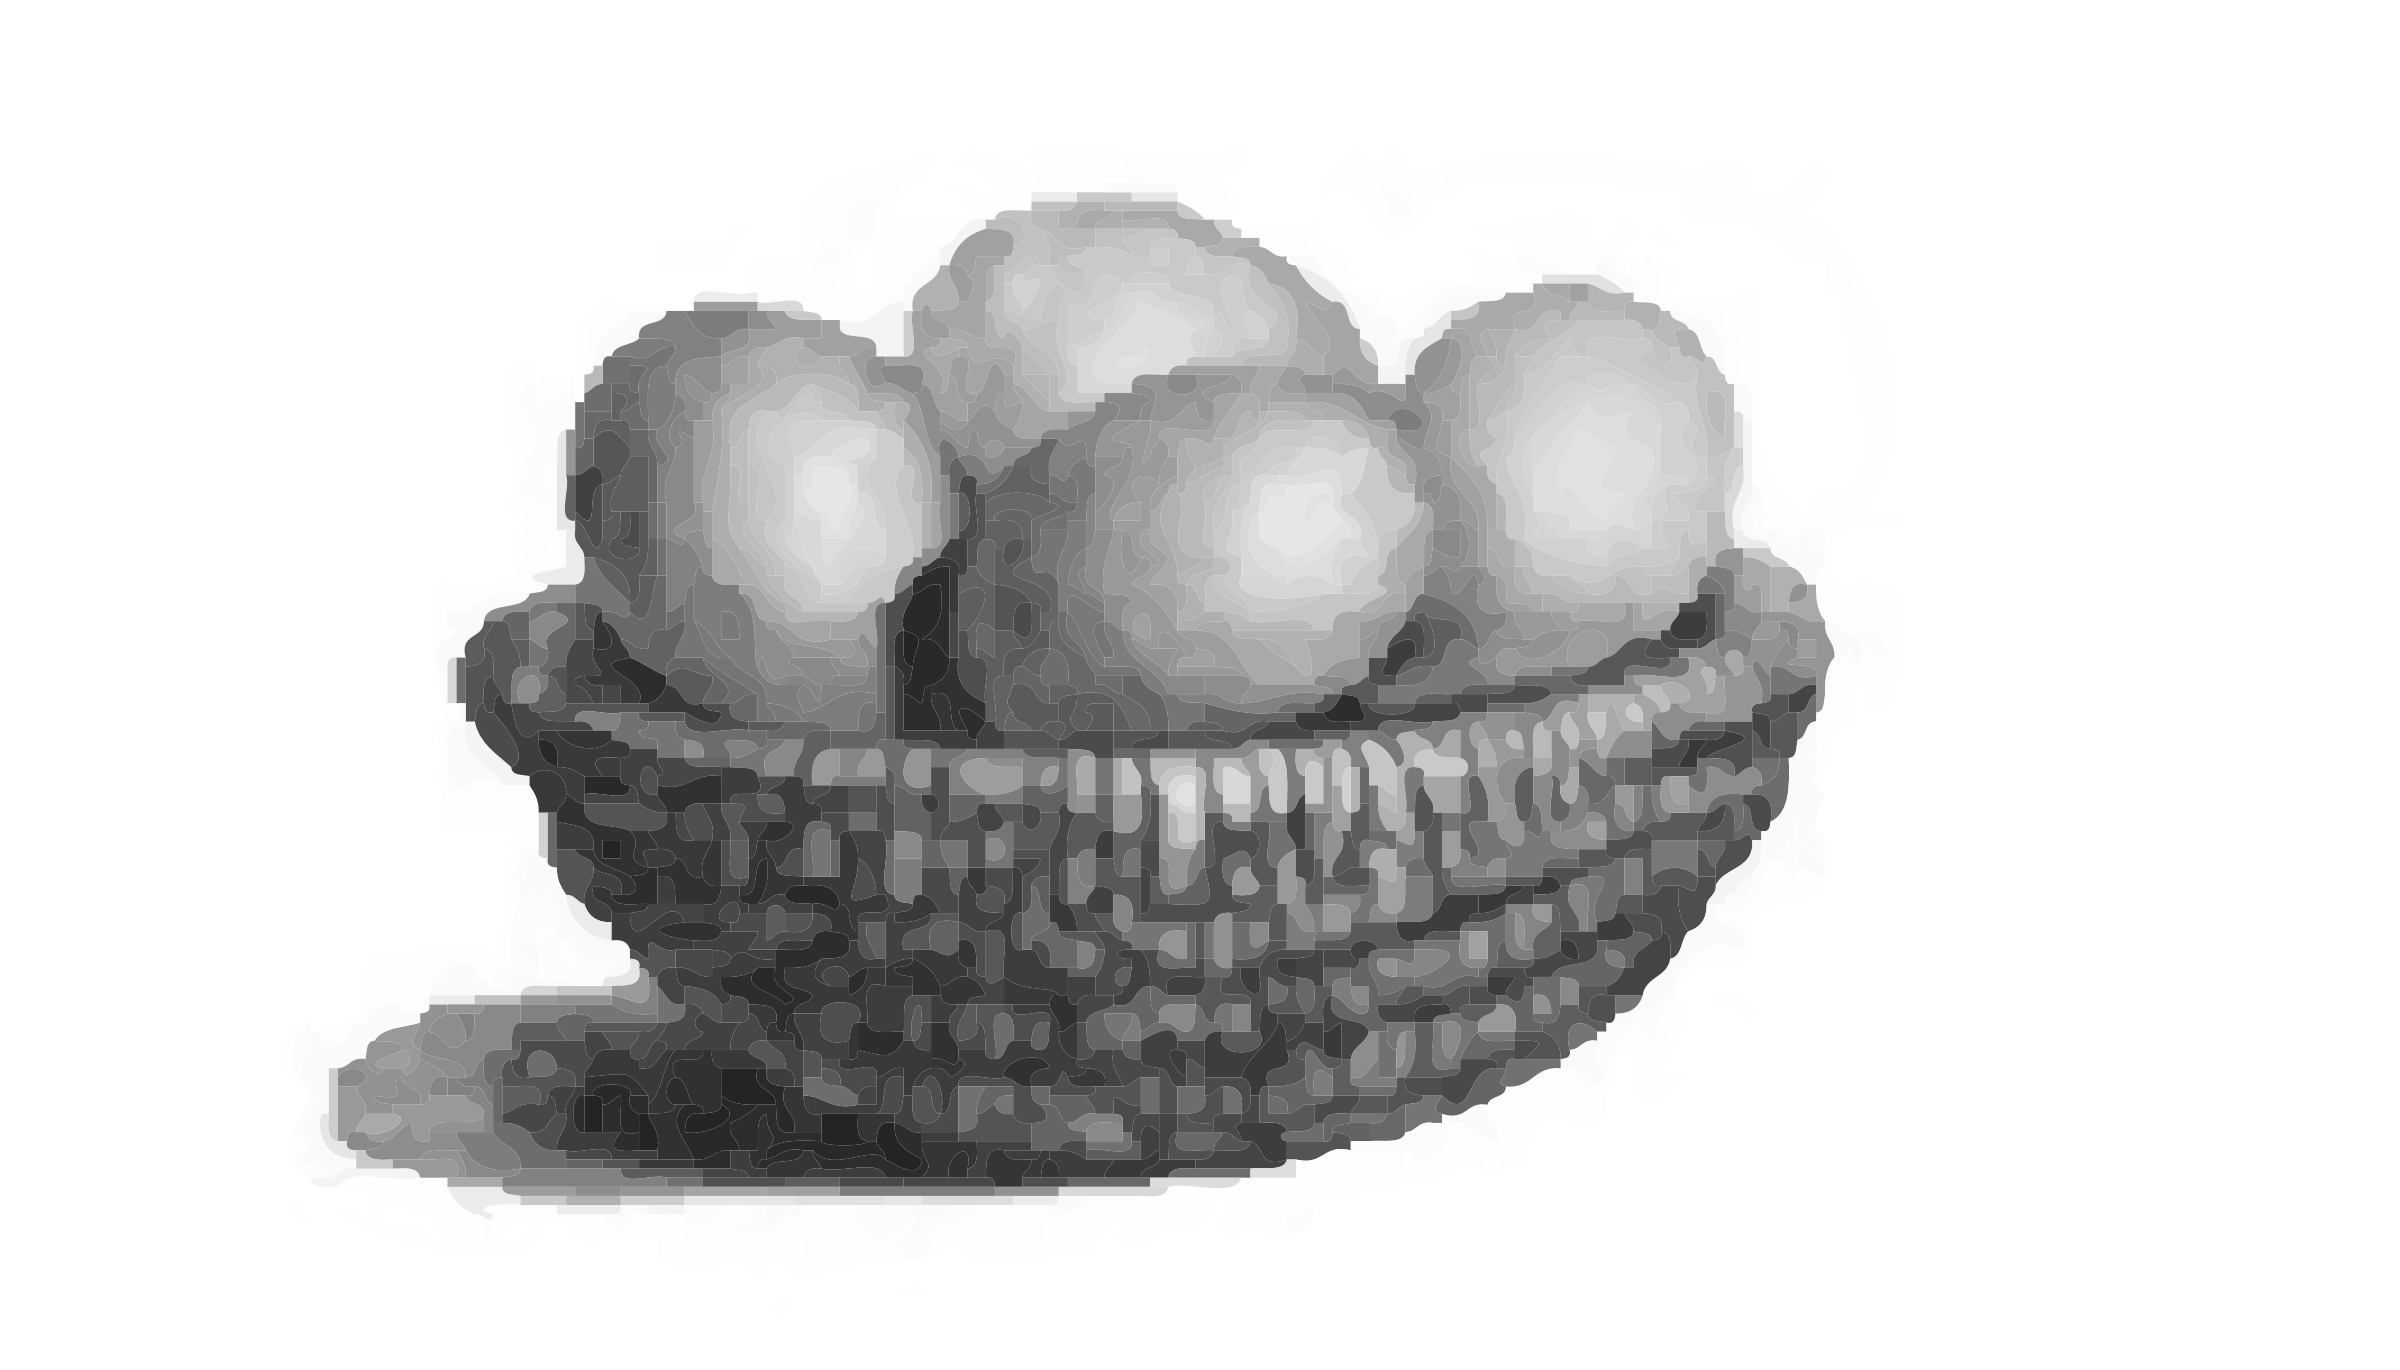 Eggs in a basket by microcosme